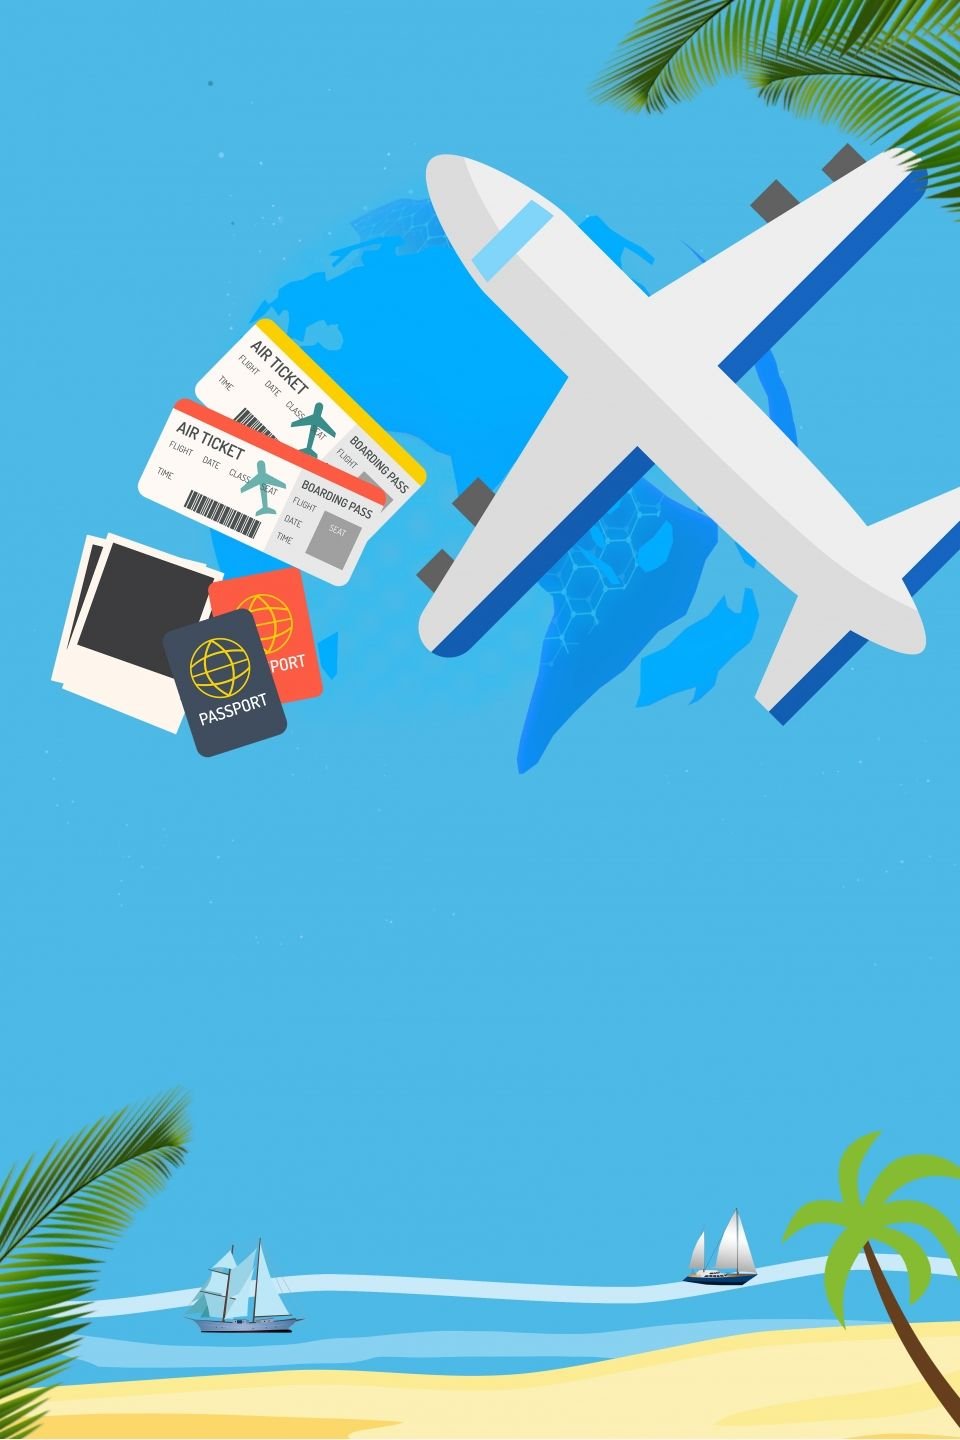 visa agent travel outbound background template in 2020 background templates travel drawing travel visa visa agent travel outbound background